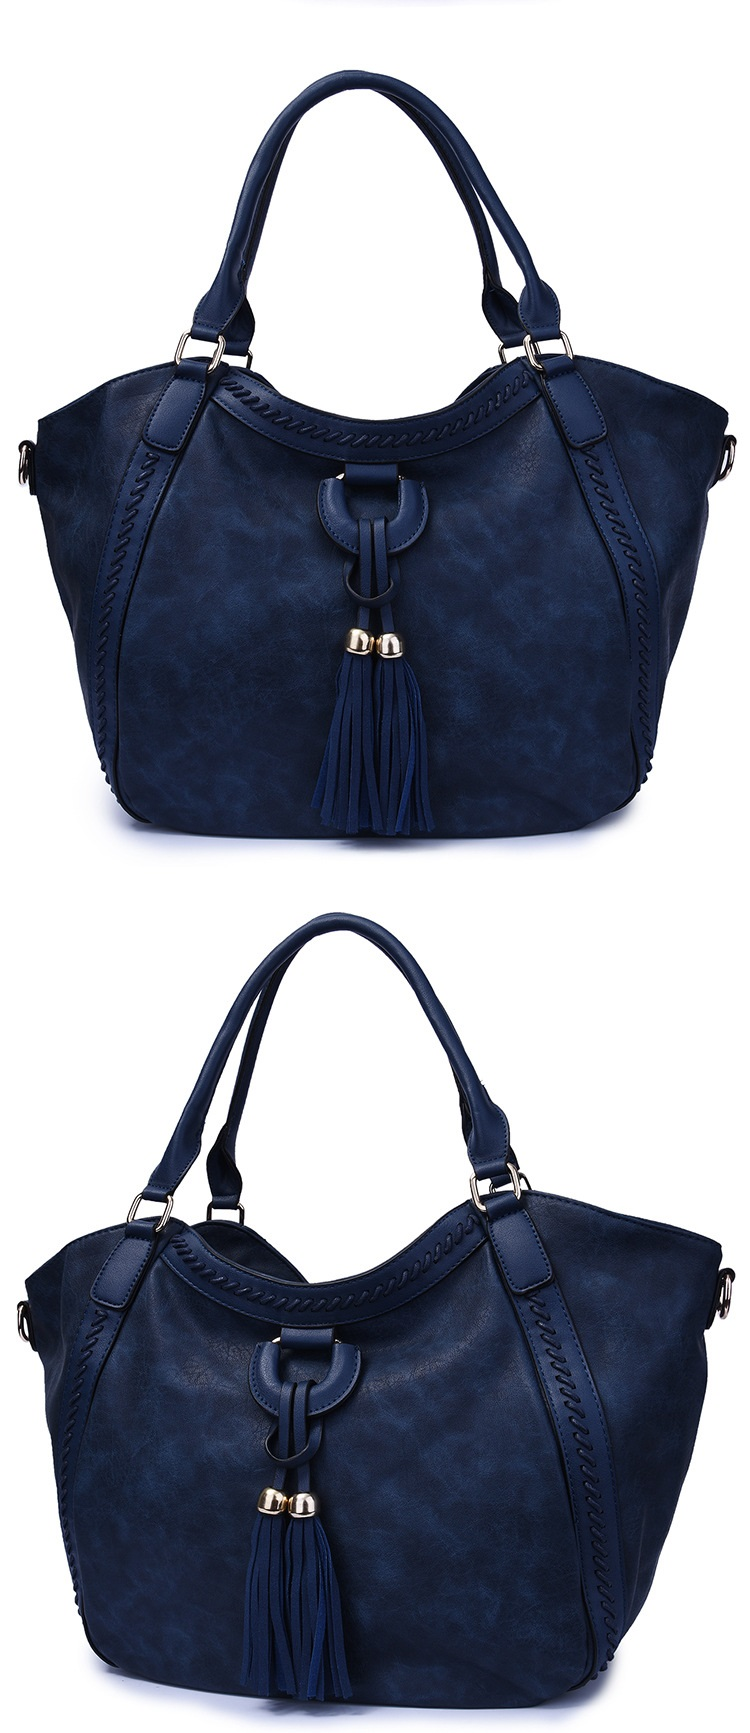 NIGEDU Leather Casual Tassel Handbag Large Famous Brands Designers Pu Leather Handbags Women Big Tote Bags Female Messenger Bags Bolsos Blue (5)